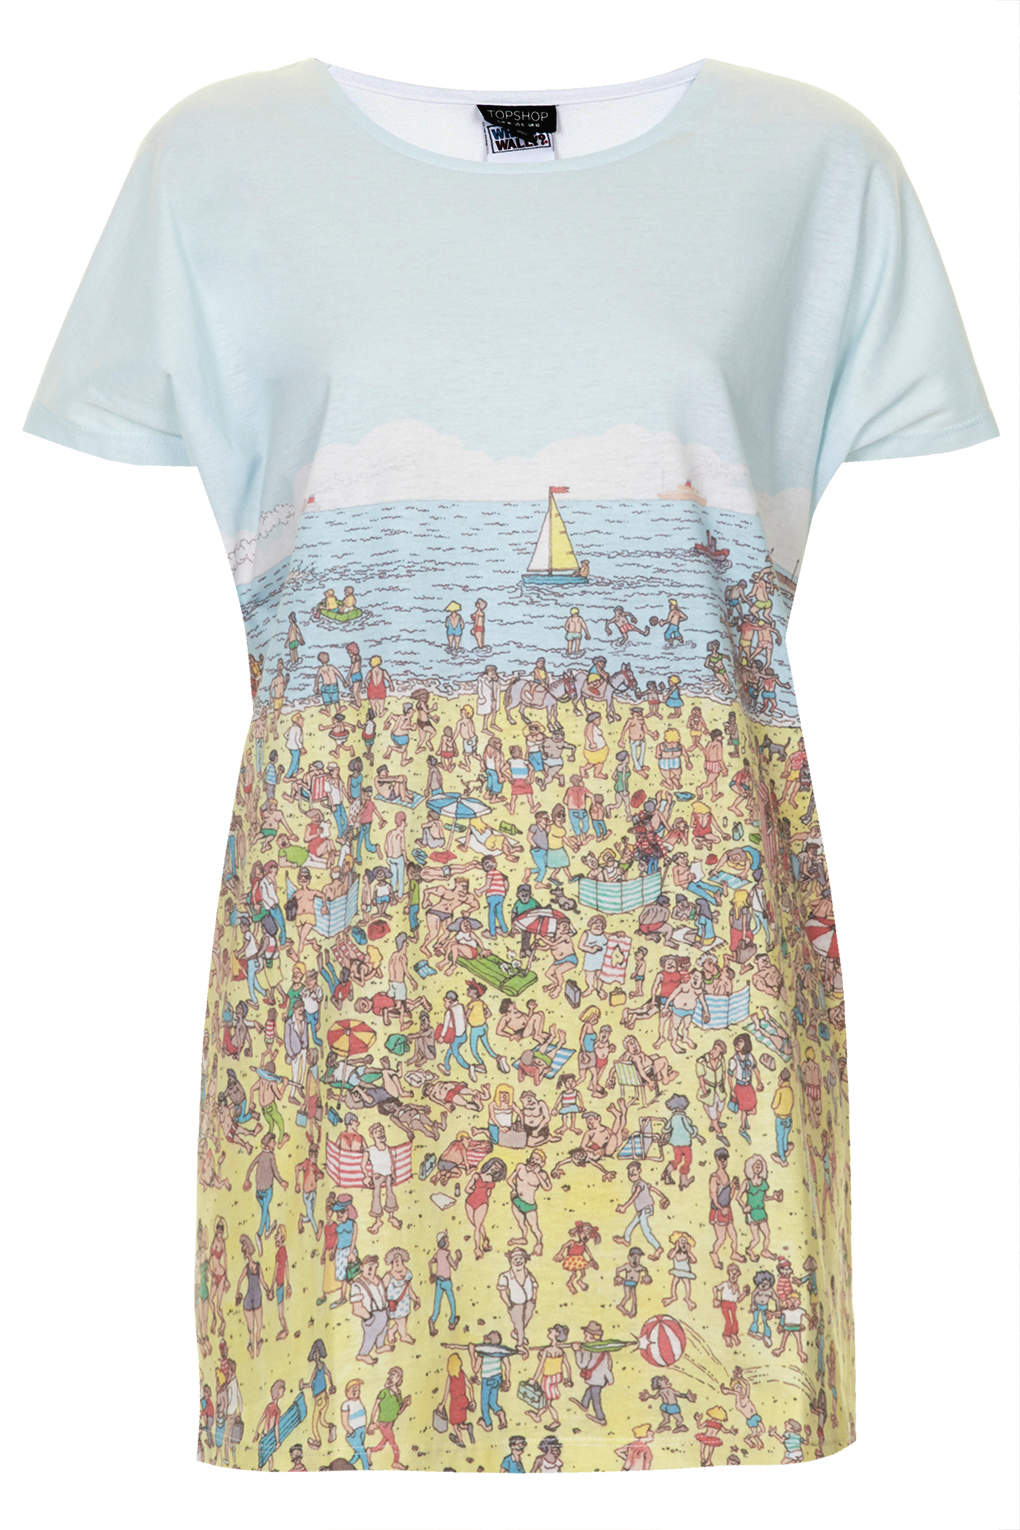 Lyst Topshop Wheres Wally Tee